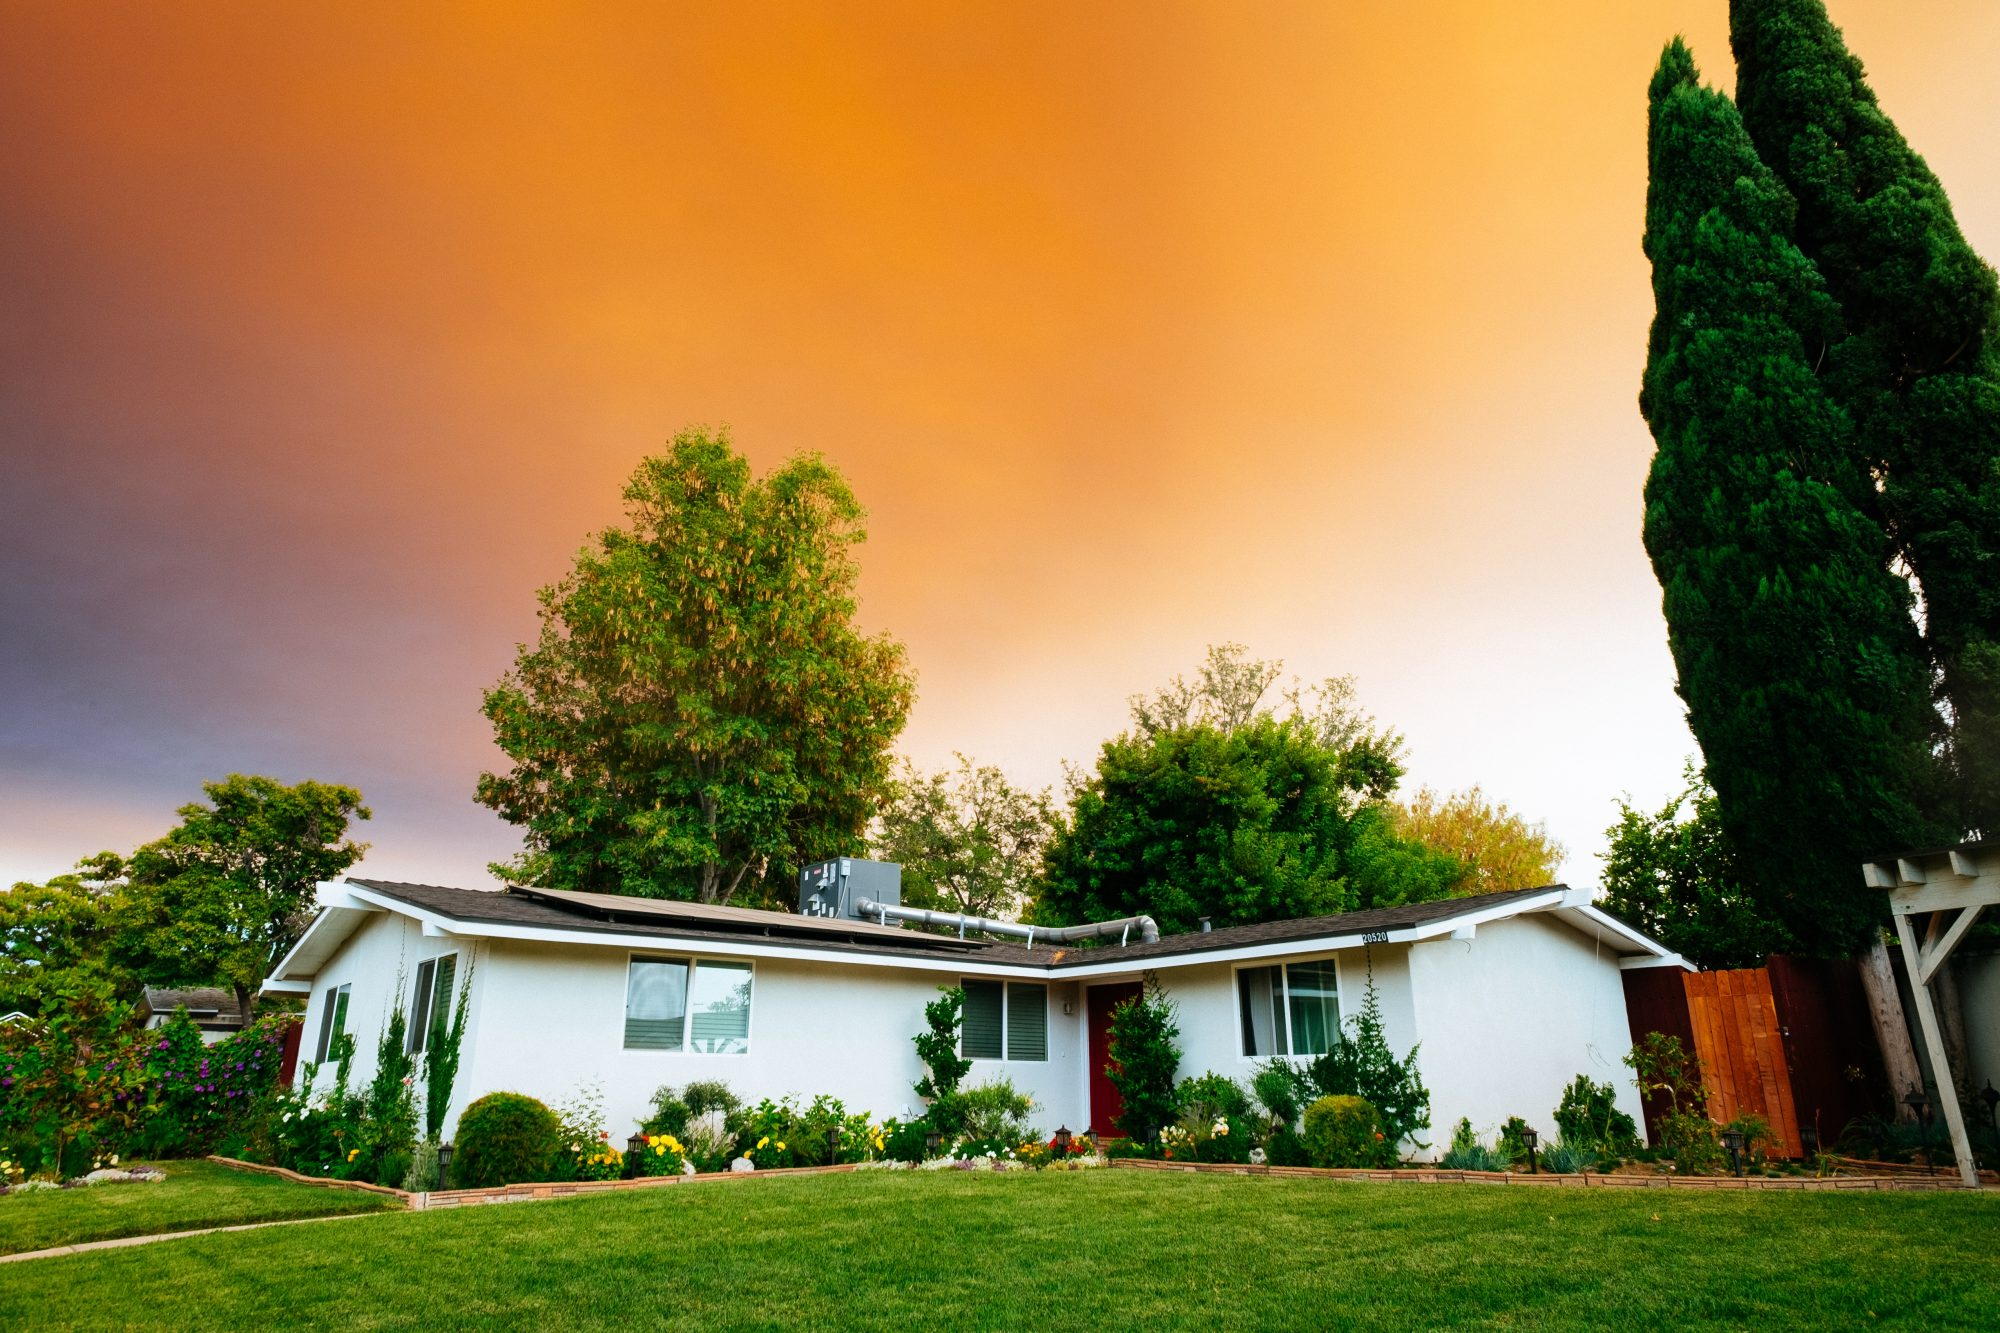 Landscaping for home energy conservation utility bills savings